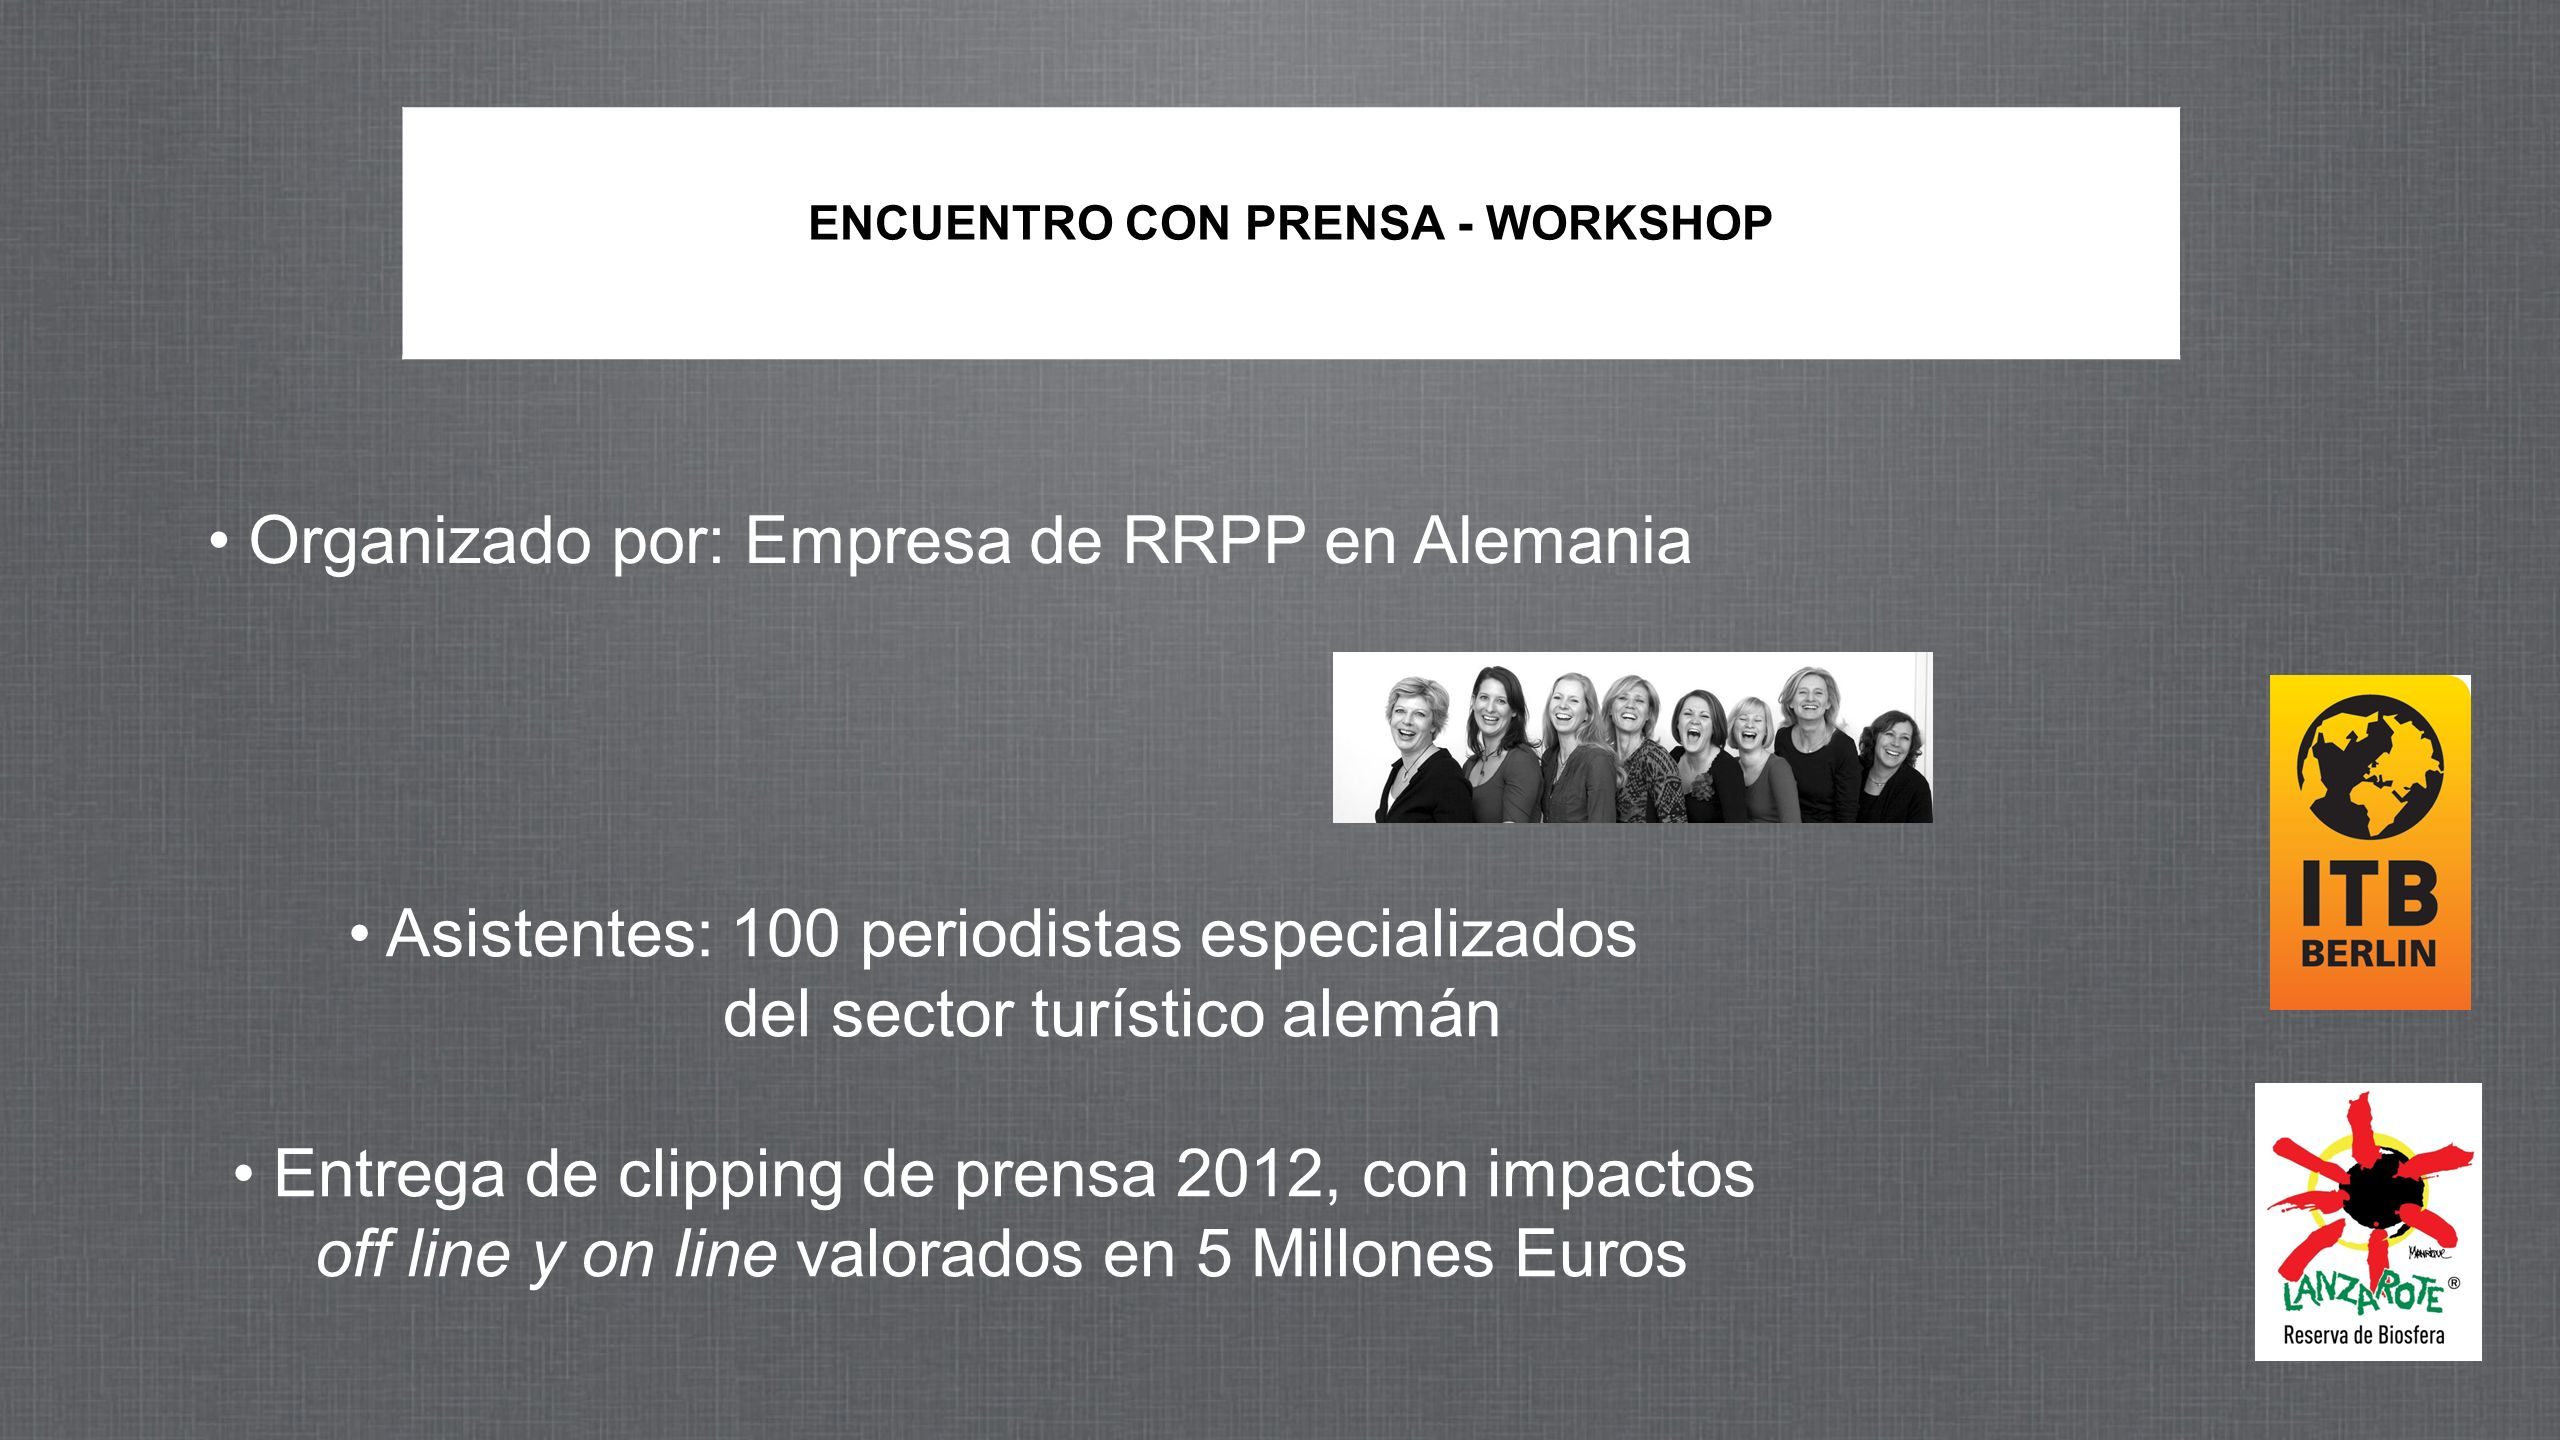 ENCUENTRO CON PRENSA - WORKSHOP